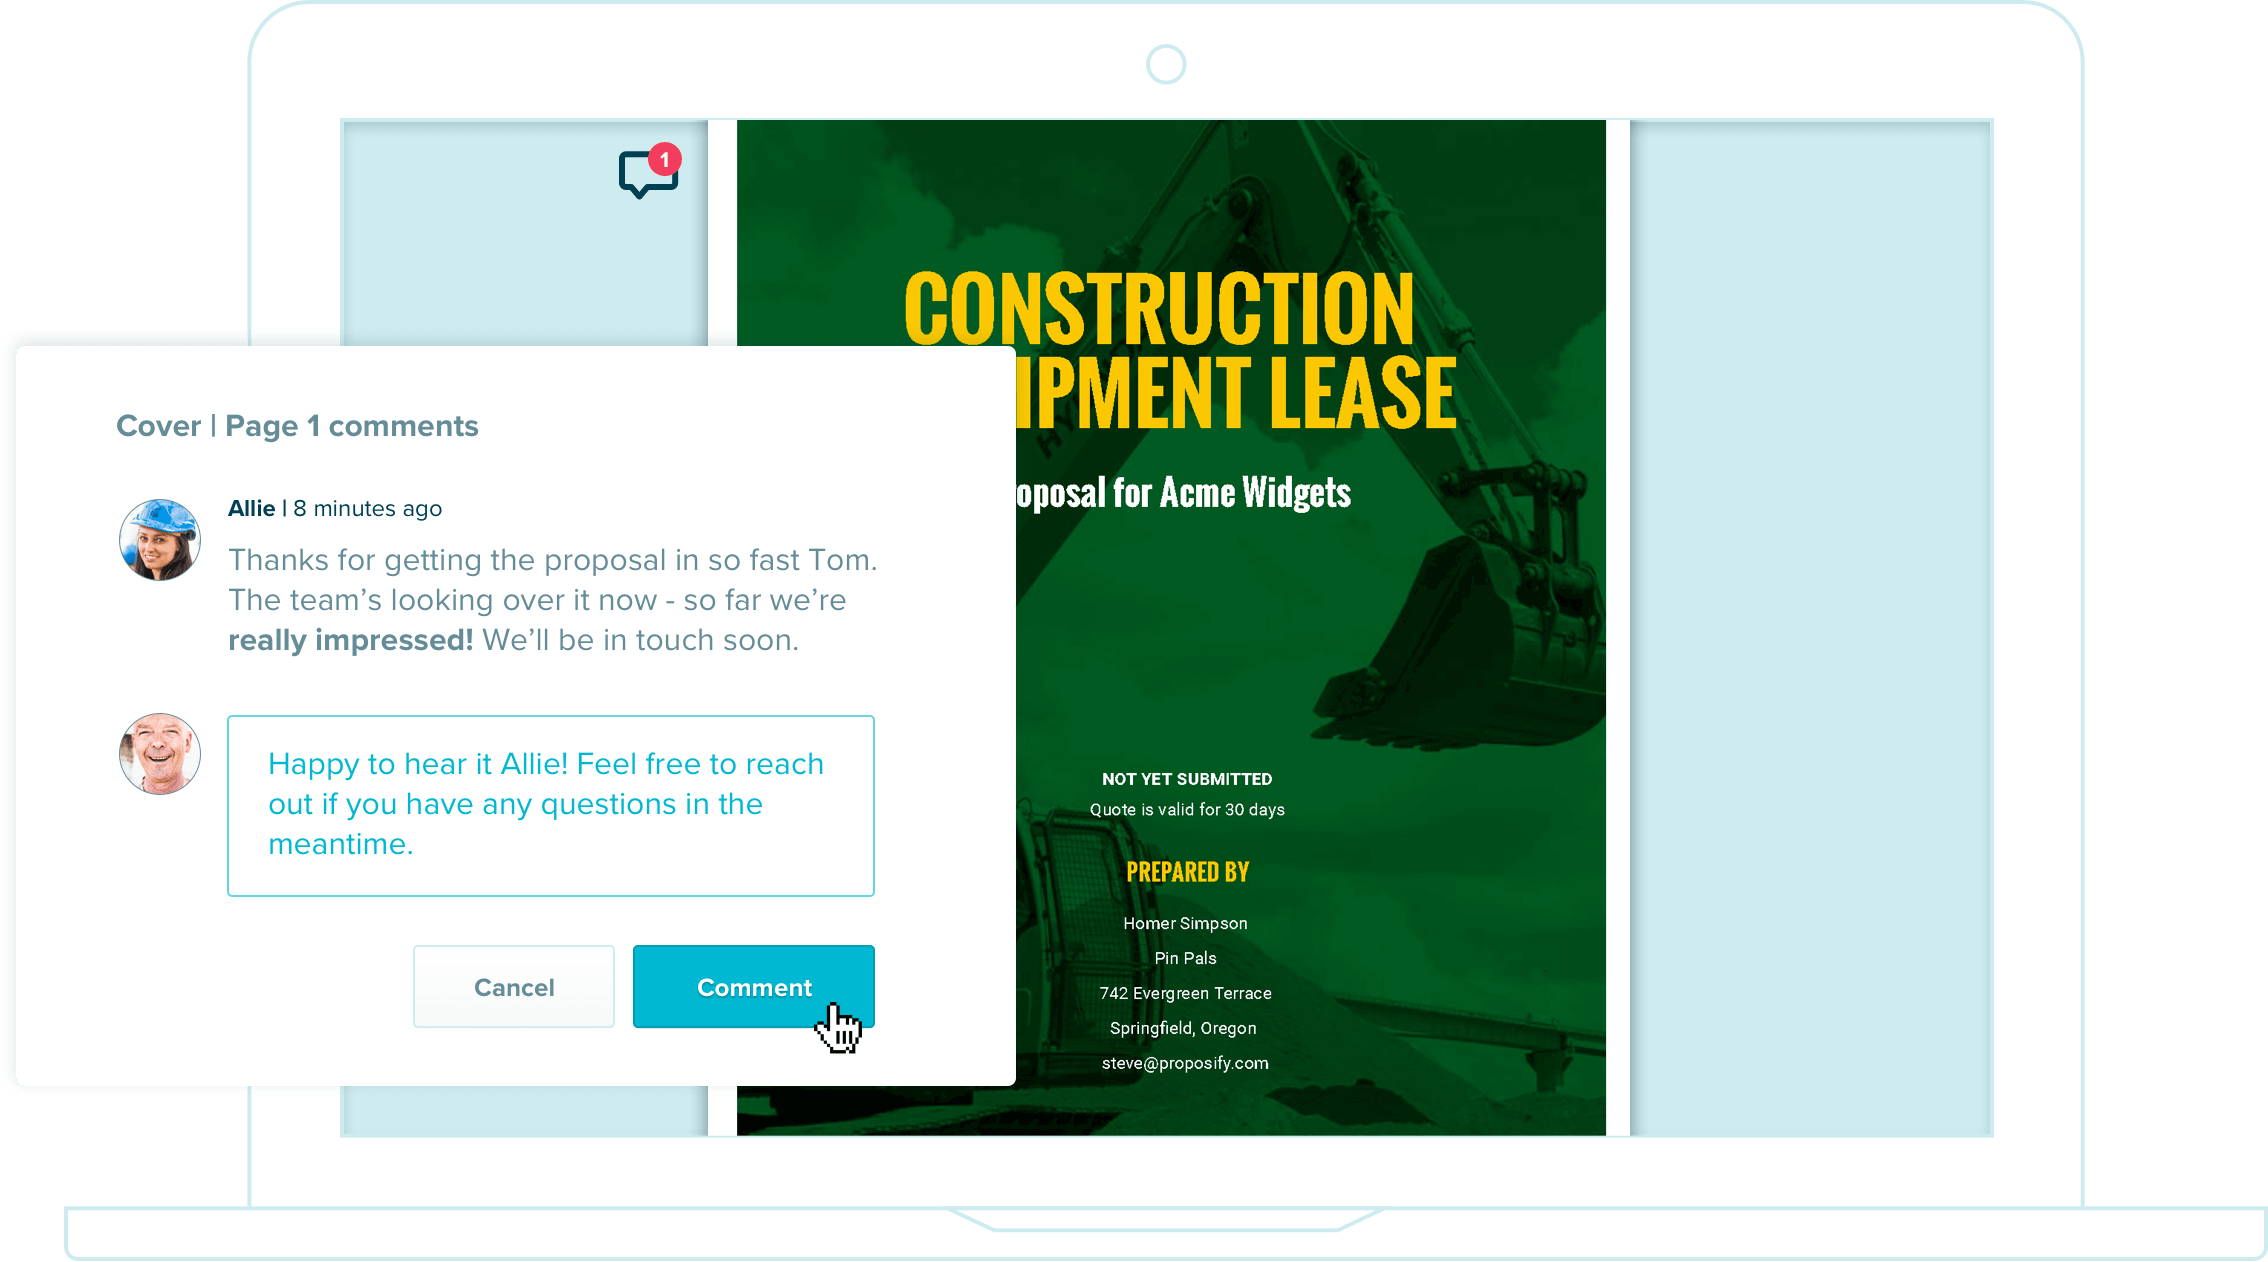 deliver an excellent construction proposal experience